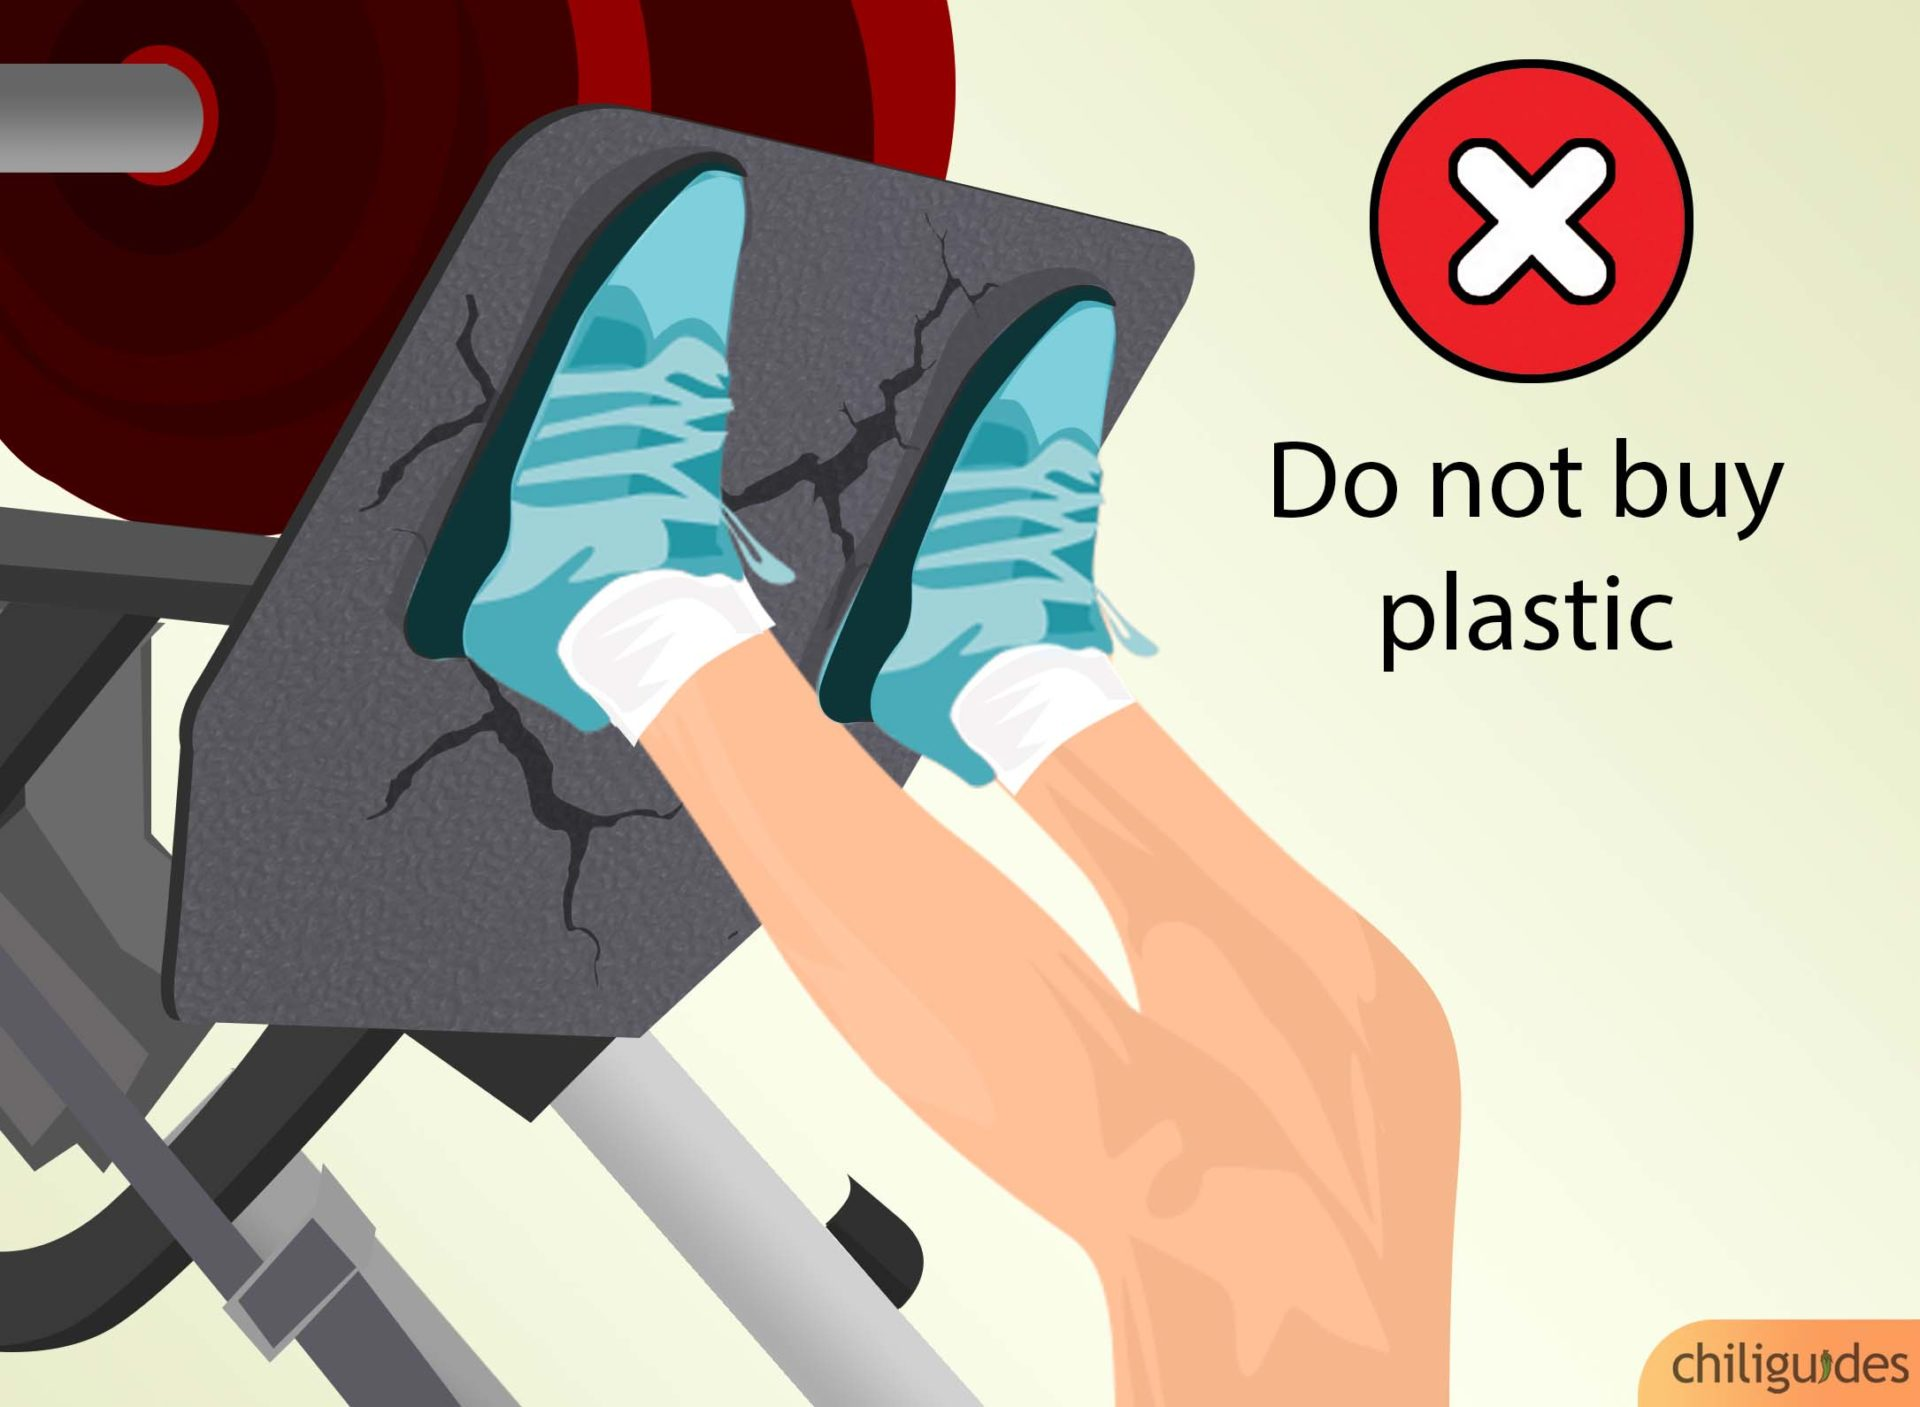 Don't buy anything plastic.